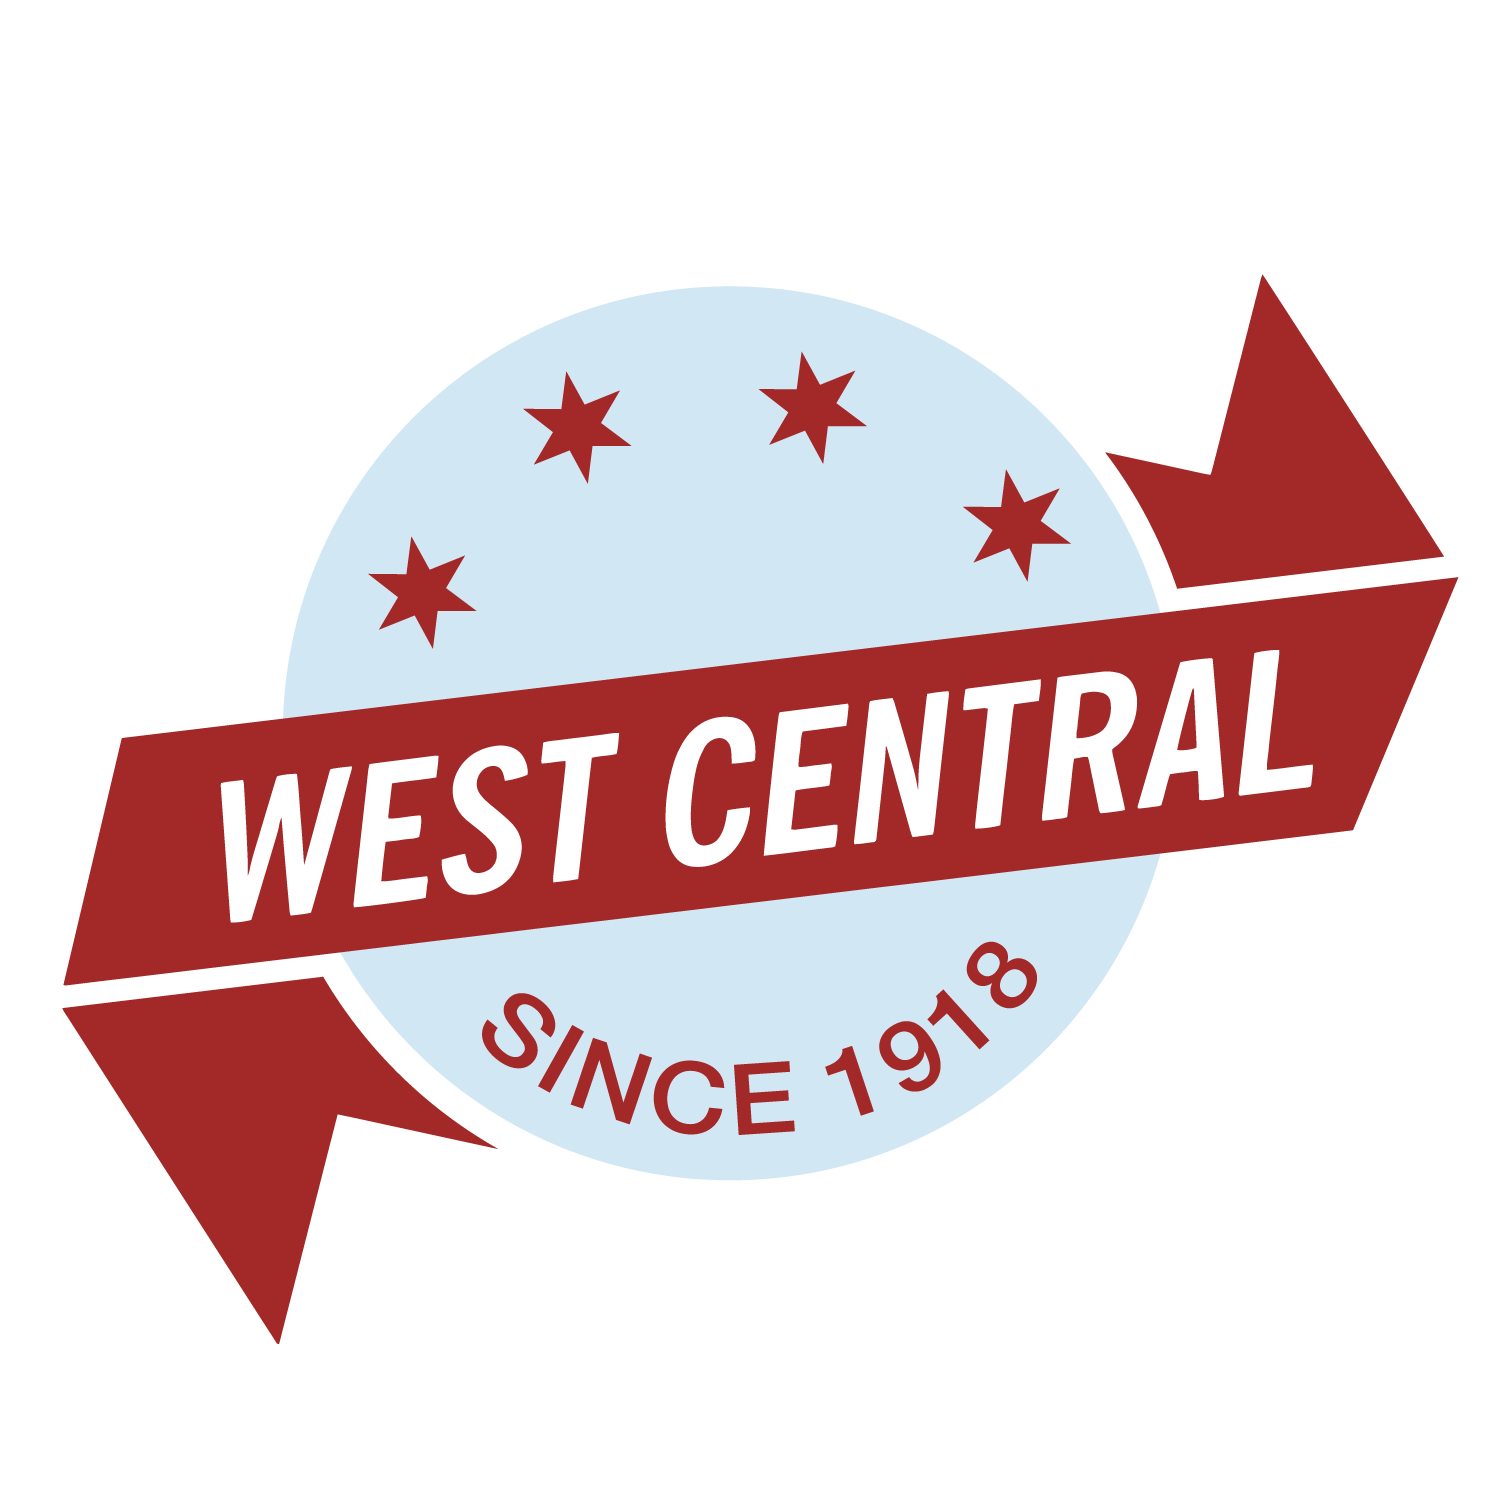 West Central Association - Chamber of Commerce